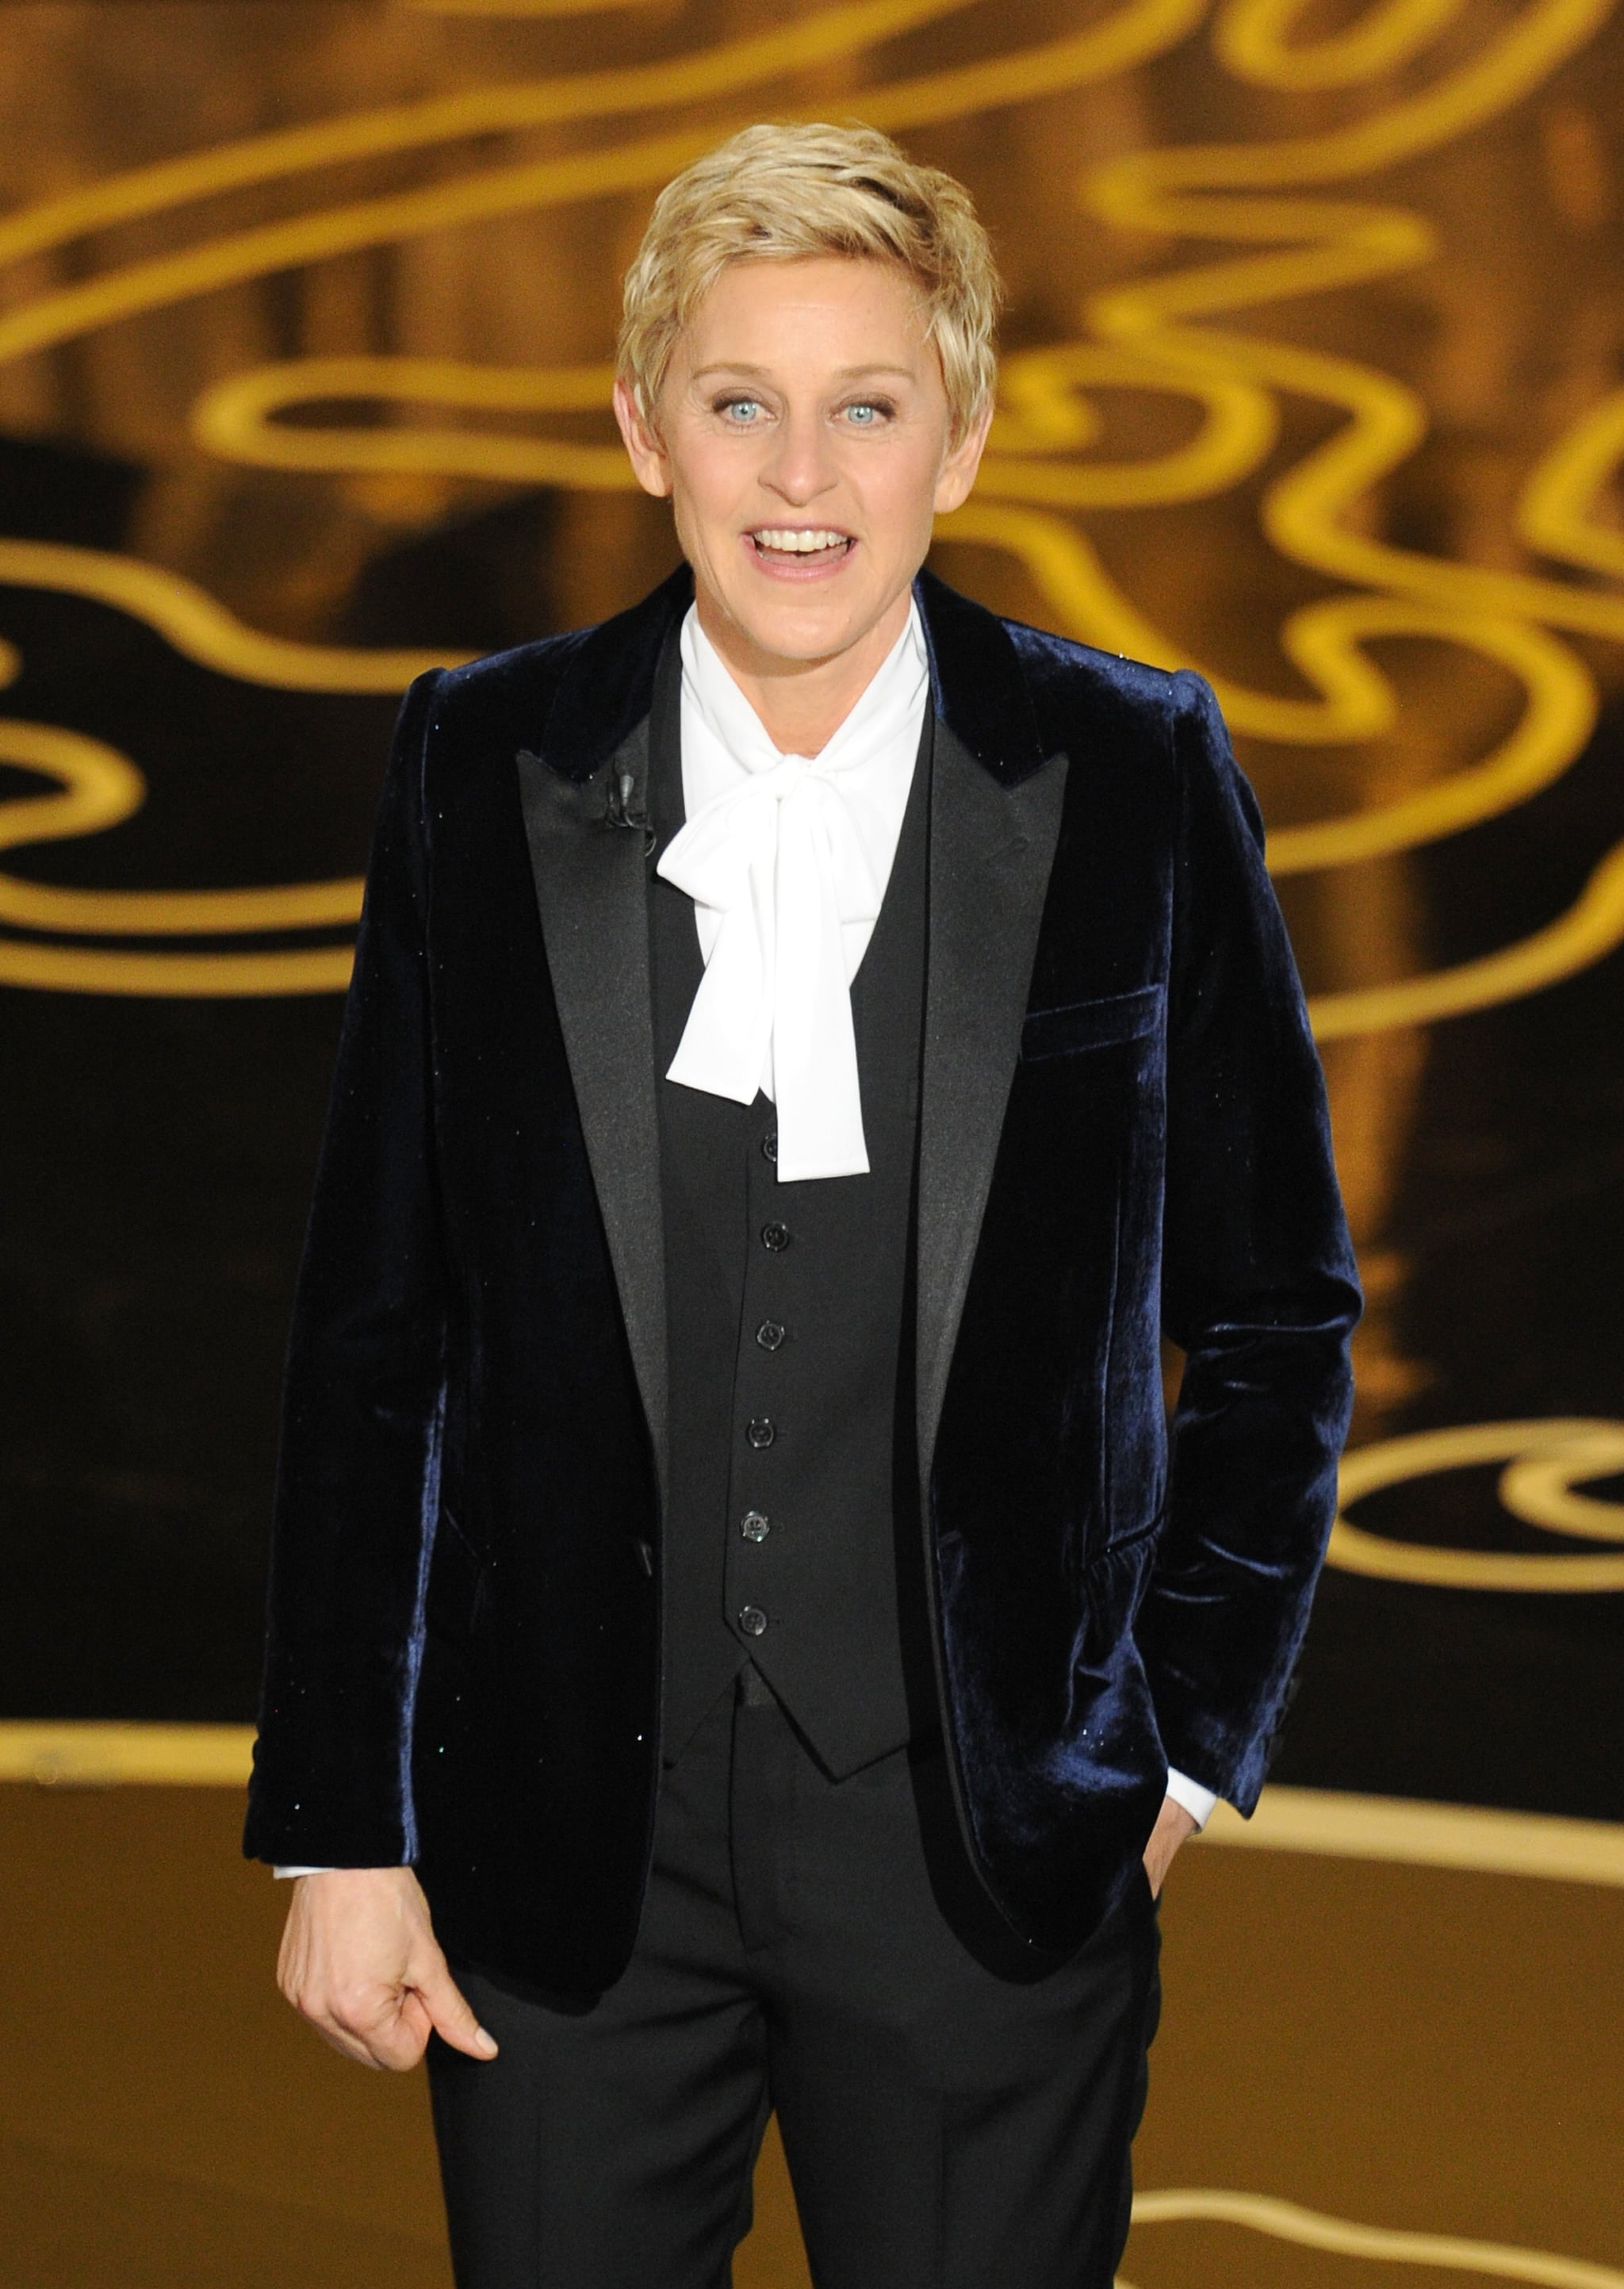 For Ellen, Selfies and Scare Tactics Always Come First